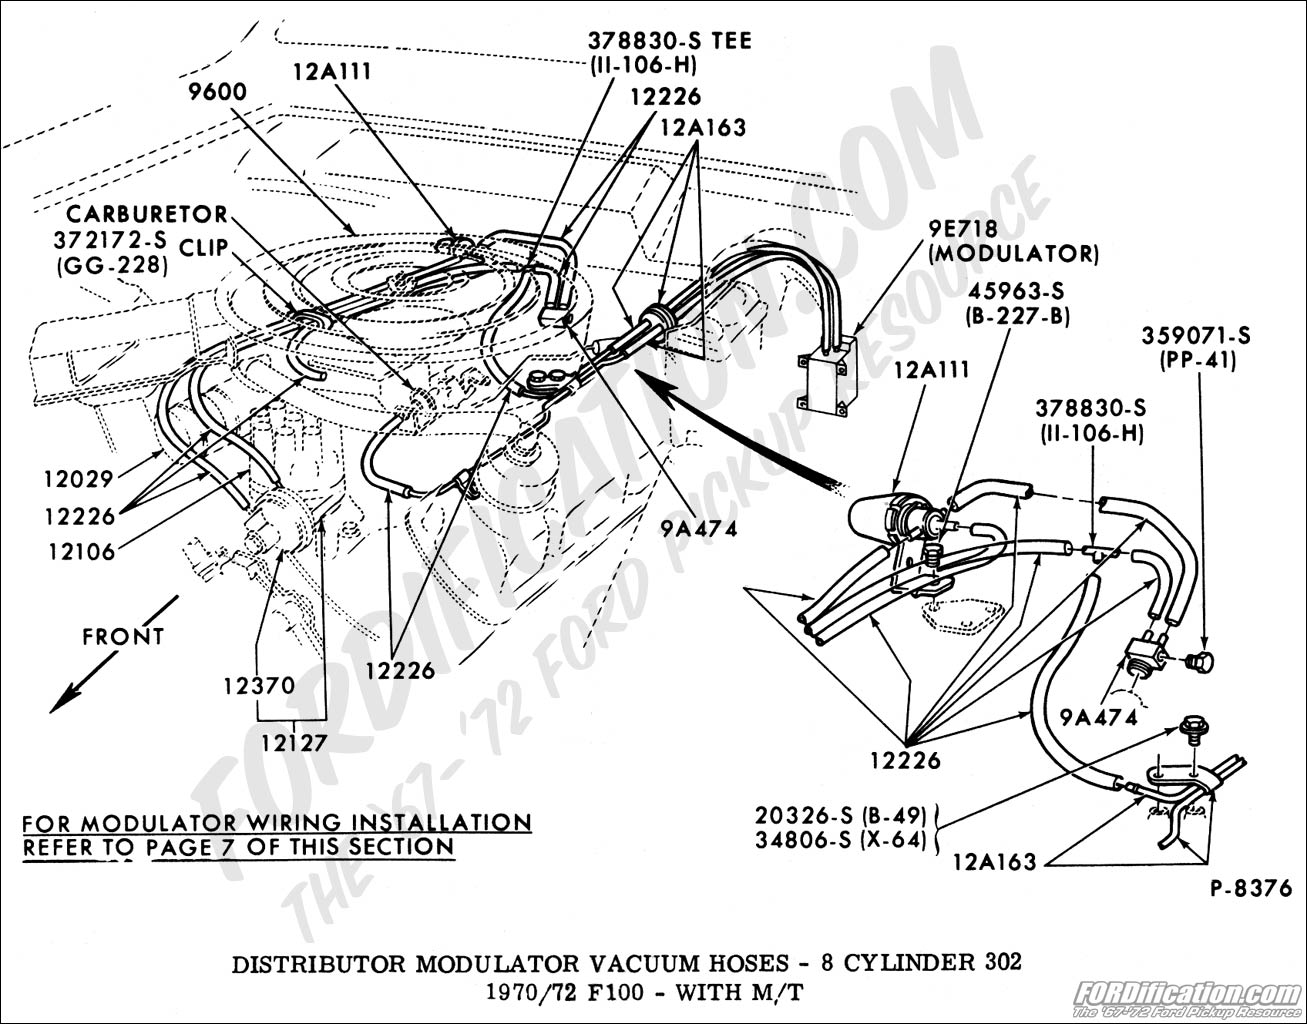 91 f150 engine diagram circuits symbols diagrams u2022 rh amdrums co uk 2001 ford f350 engine diagram 1994 ford f350 engine diagram